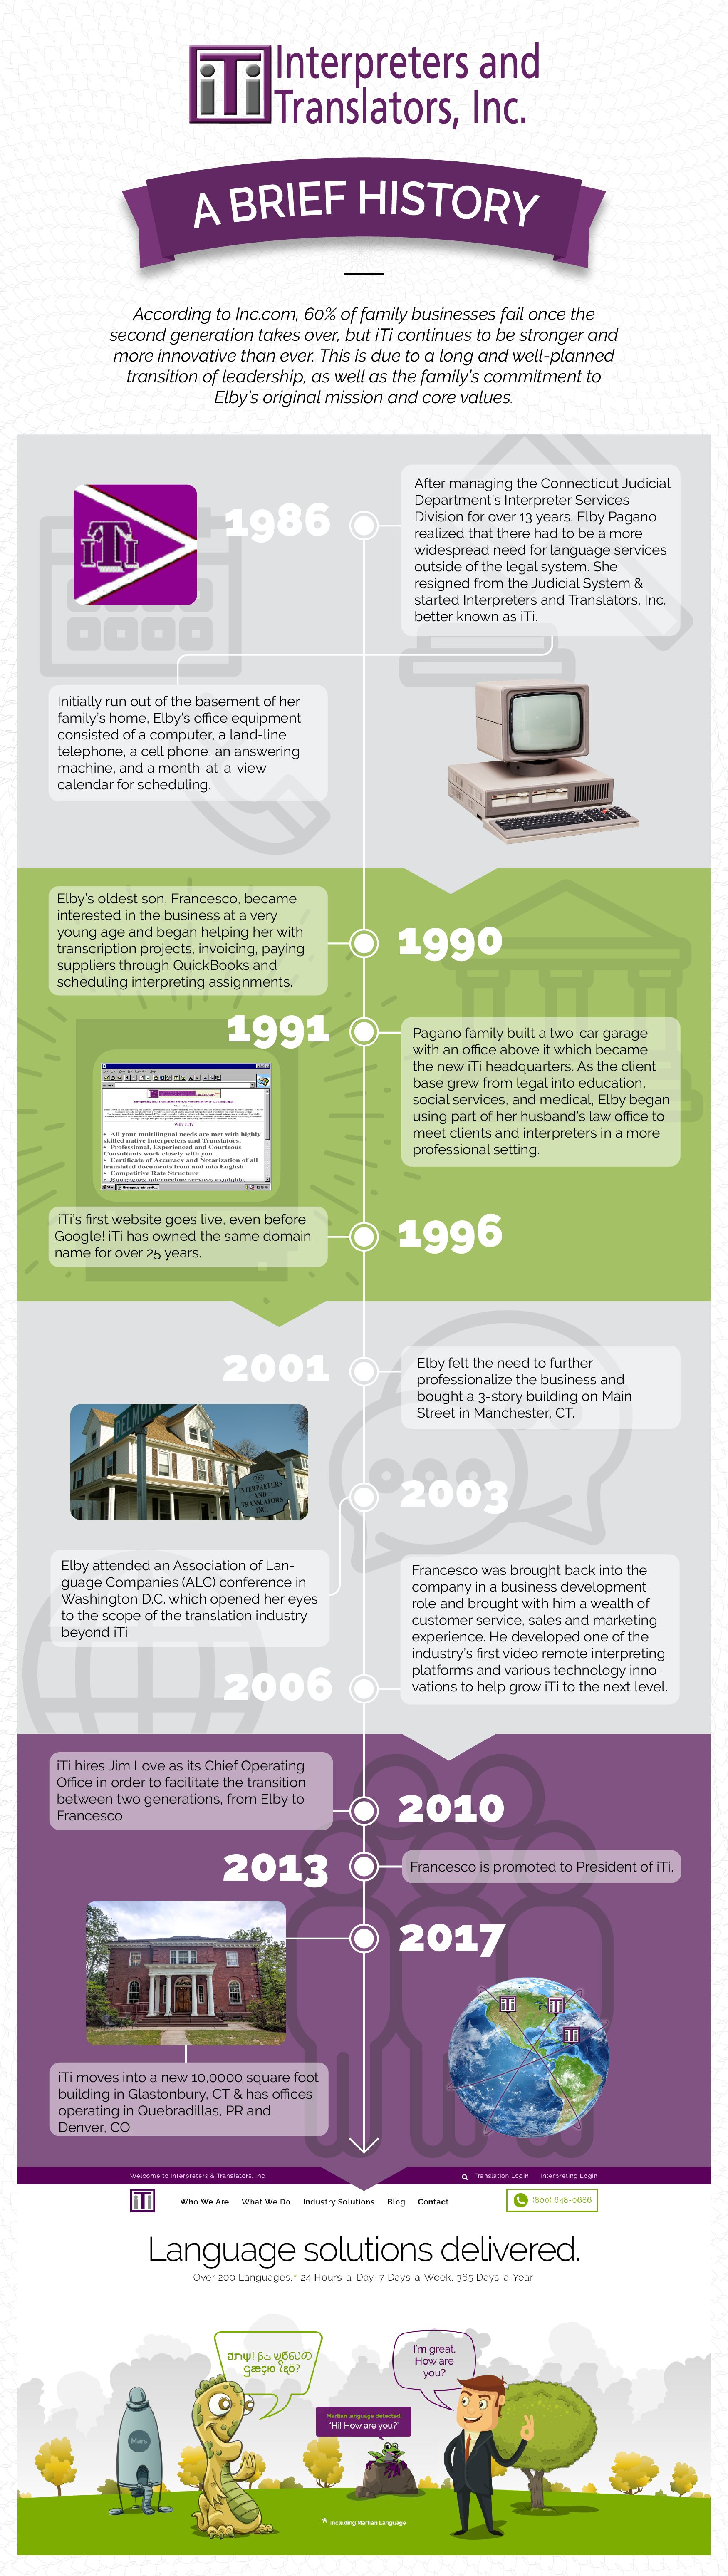 Info-graphic that details iTi's history, Founded in Connecticut in 1986